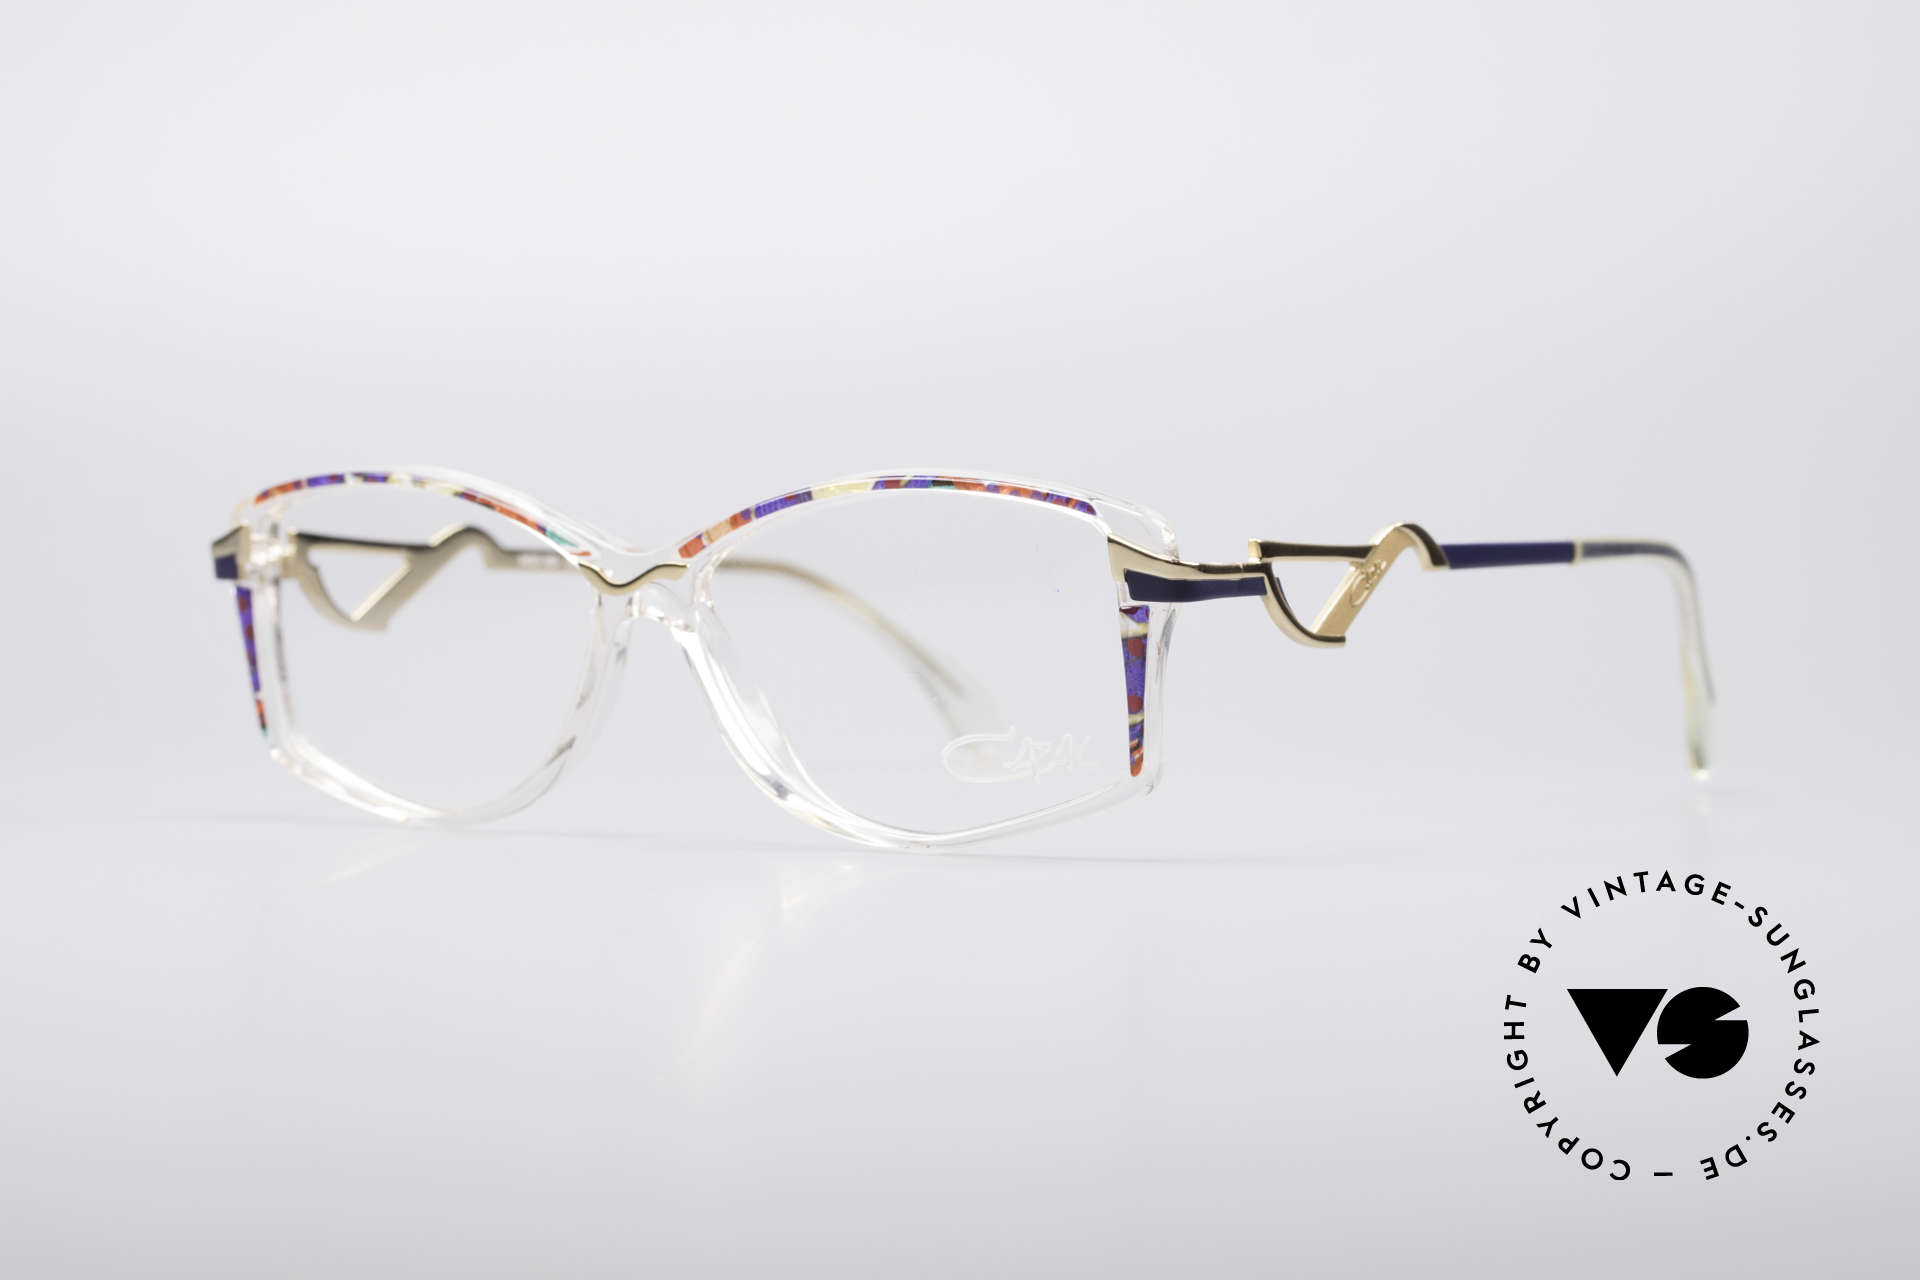 Cazal 369 90's Vintage No Retro Specs, striking temples & brilliant combination of materials, Made for Women